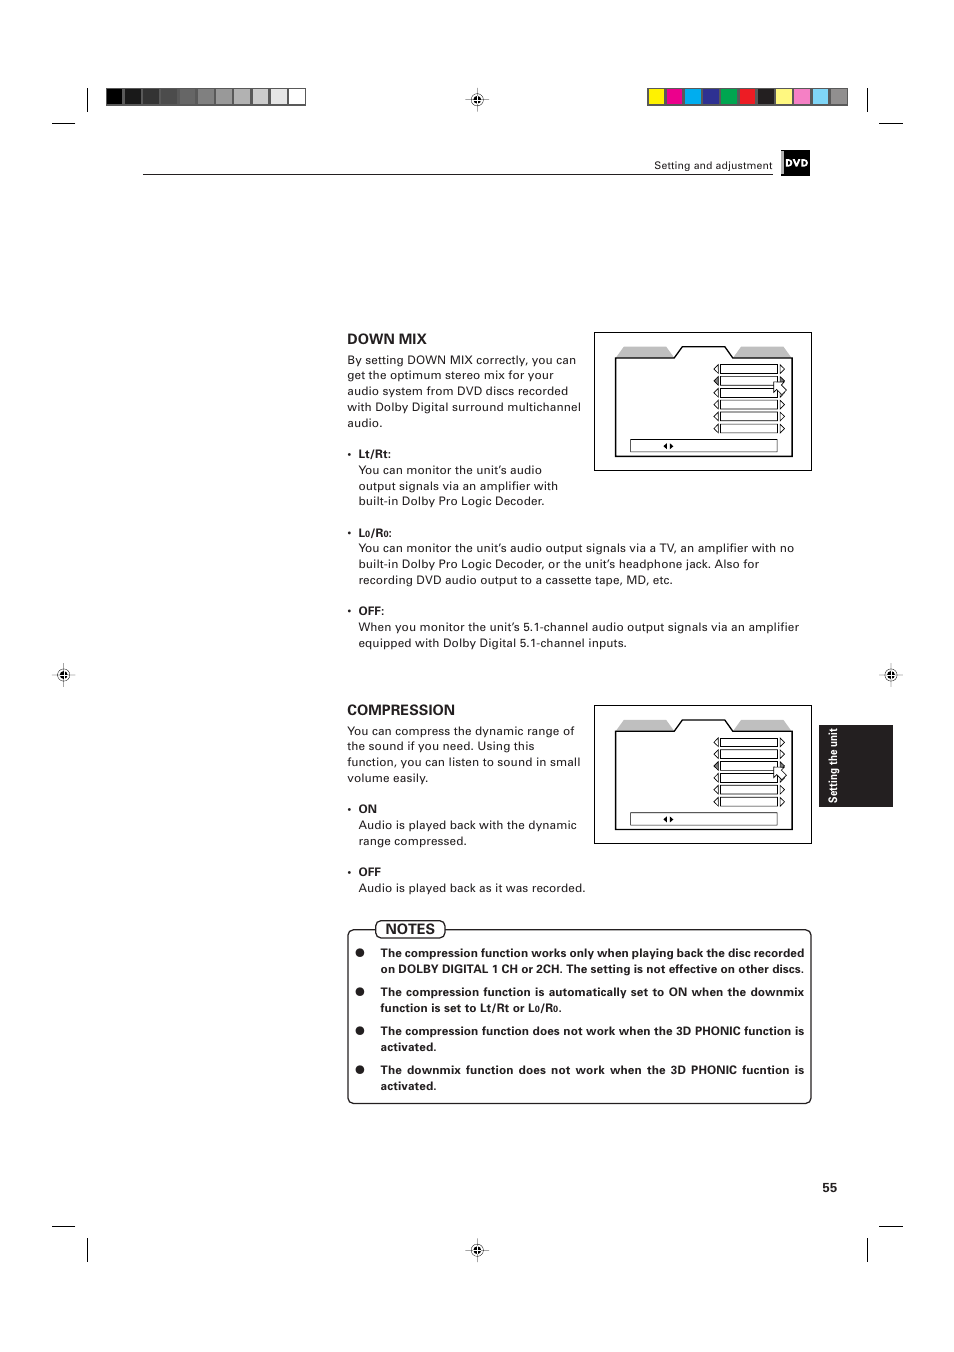 Down mix, Compression | JVC XV-D705GD User Manual | Page 57 / 113